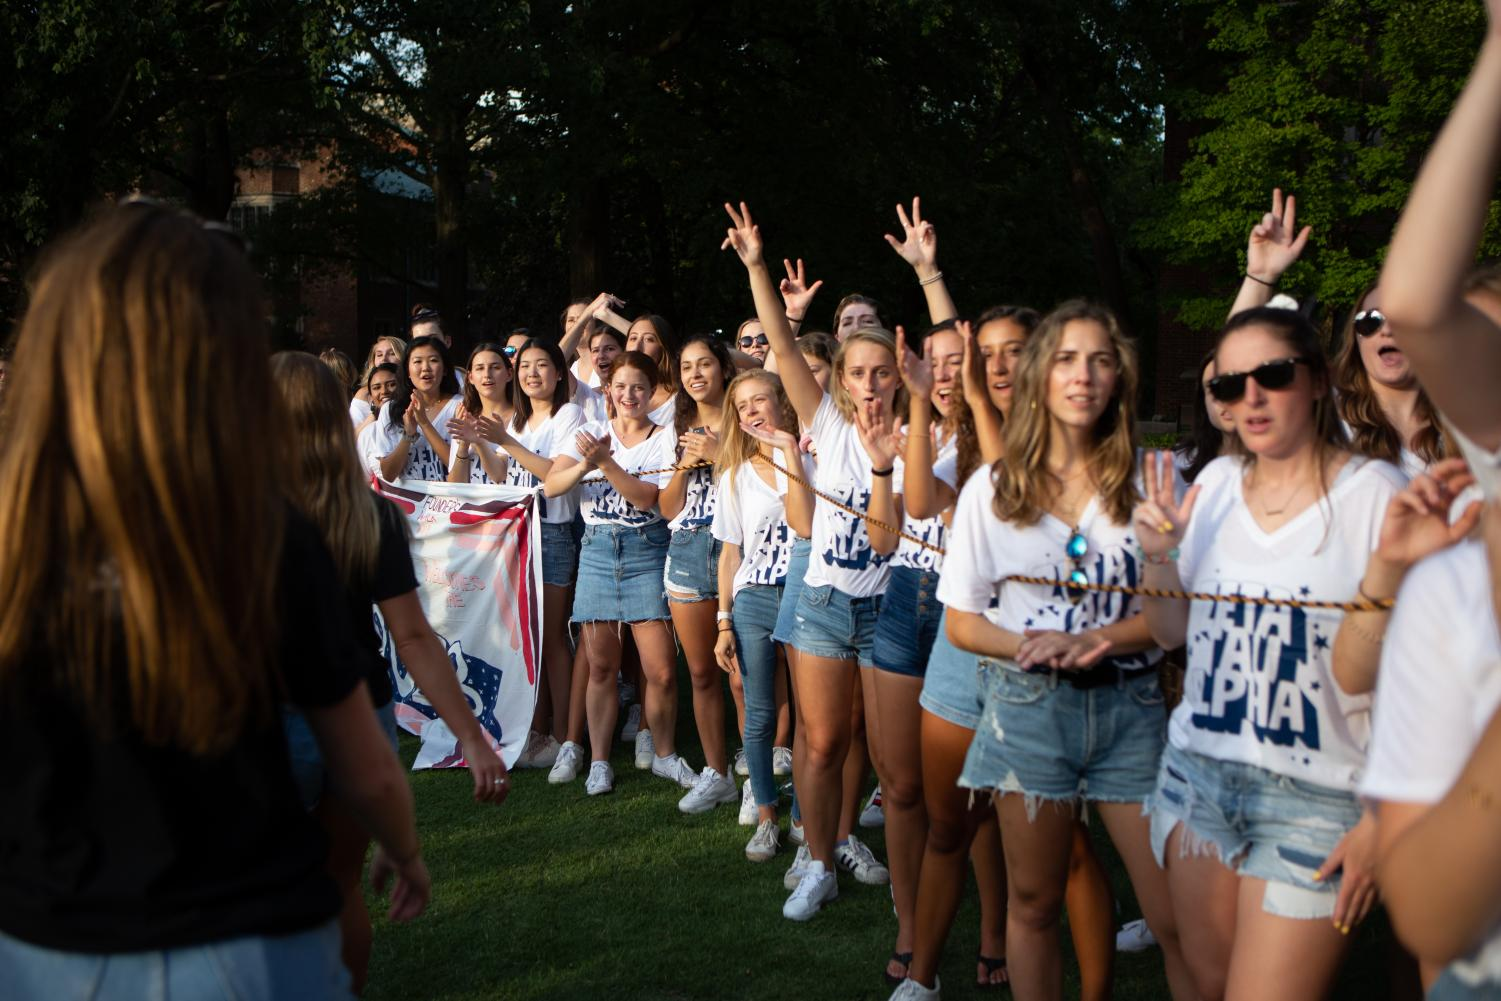 Zeta+Tau+Alpha+welcomes+new+students+during+Founders+Walk+2019.+%28Photo+by+Hunter+Long%29